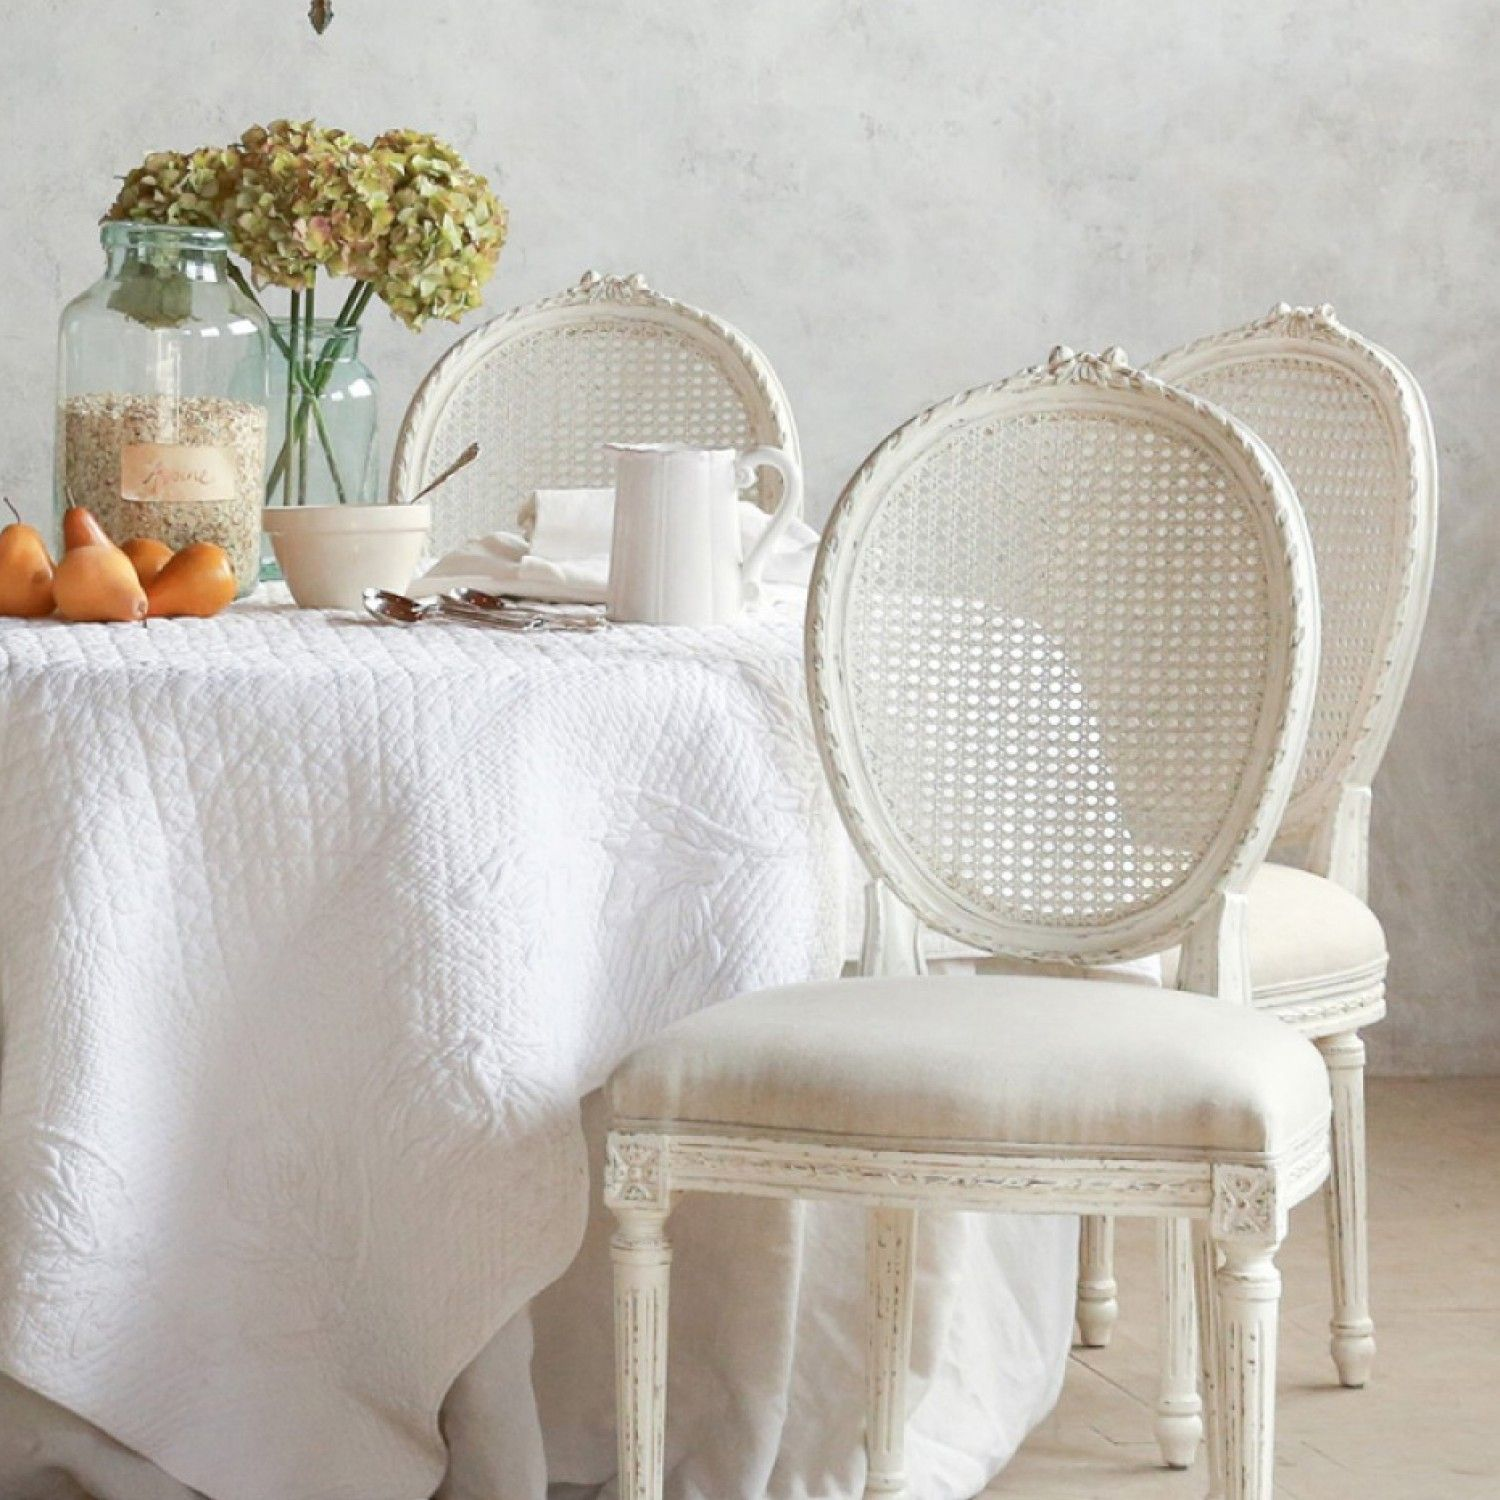 Antique cane chair styles - A Lovely French Inspired Shabby Chic Dining Space With A King Louis Style Antique White Cane Back Chairsshabby